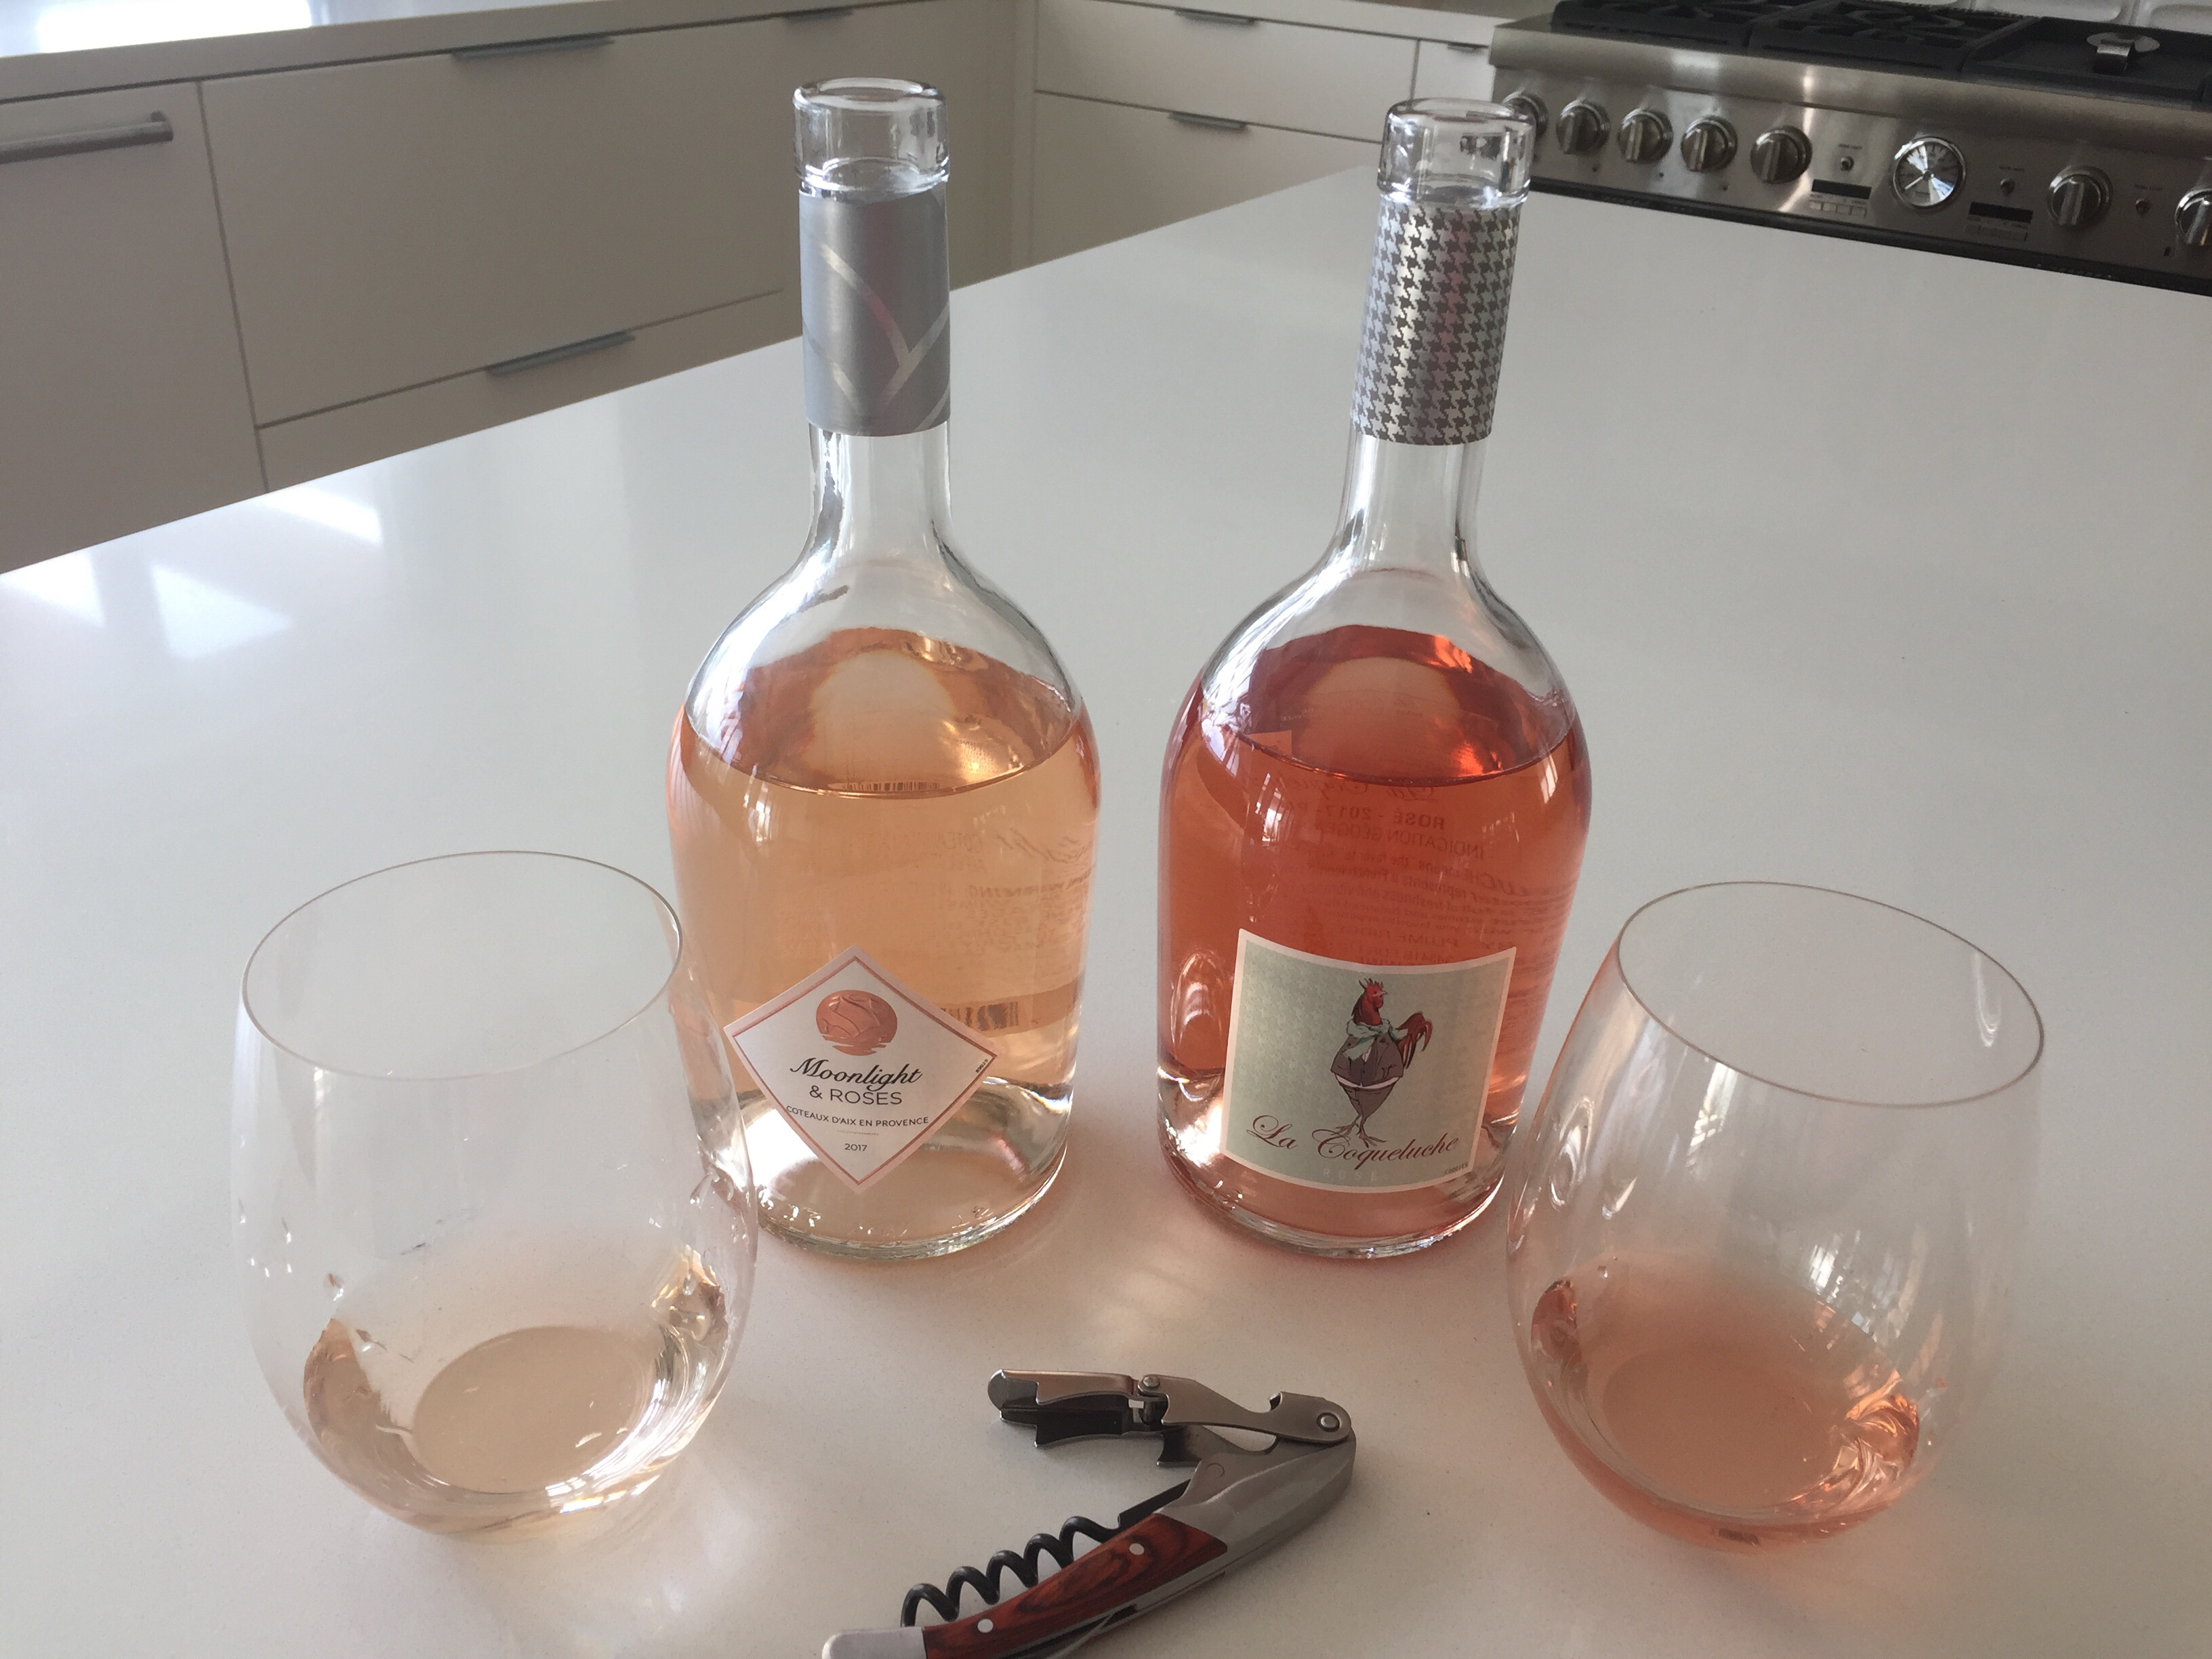 2017 Moonlight and Roses from Coteaux d' Aix-en- Provence and 2017 La Coqueluche Vin d' Pays D'Oc